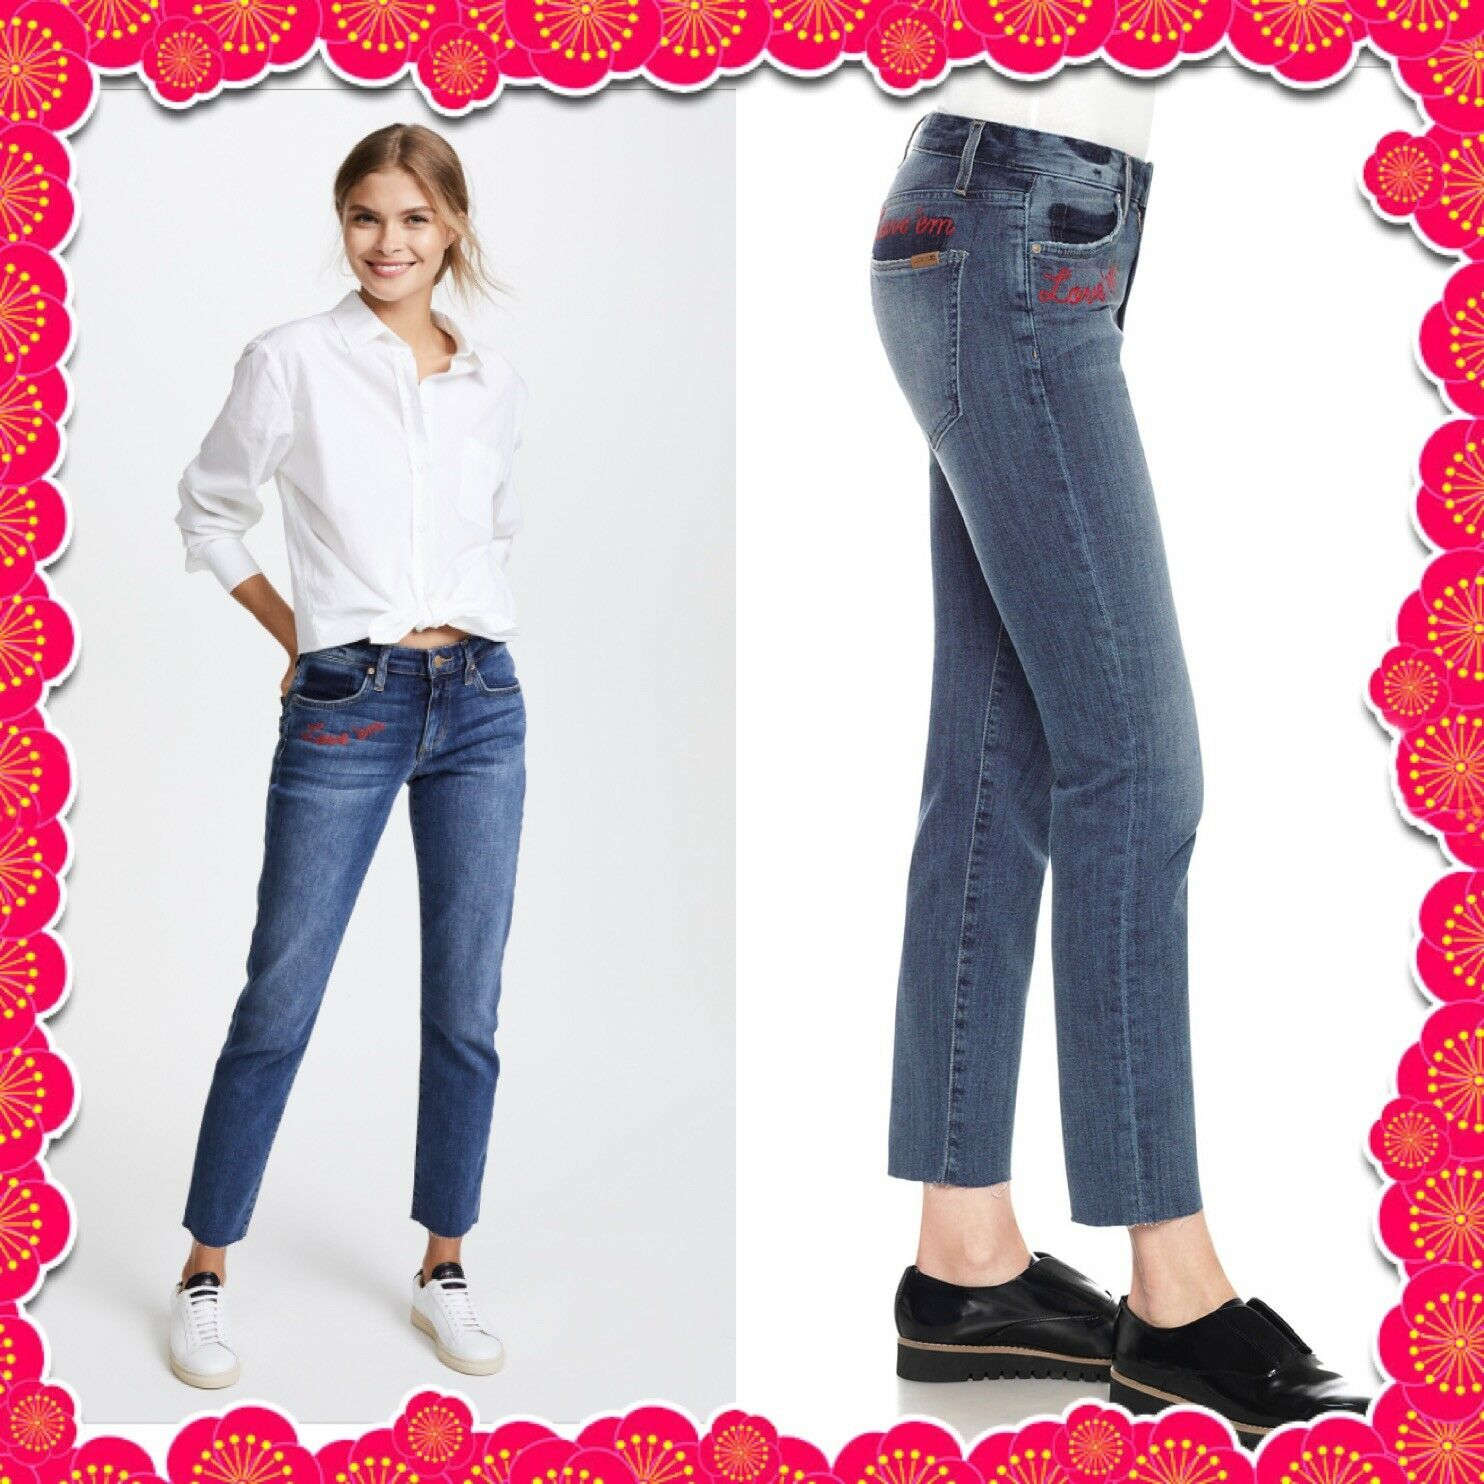 Joes Jeans Smith Midrise 28